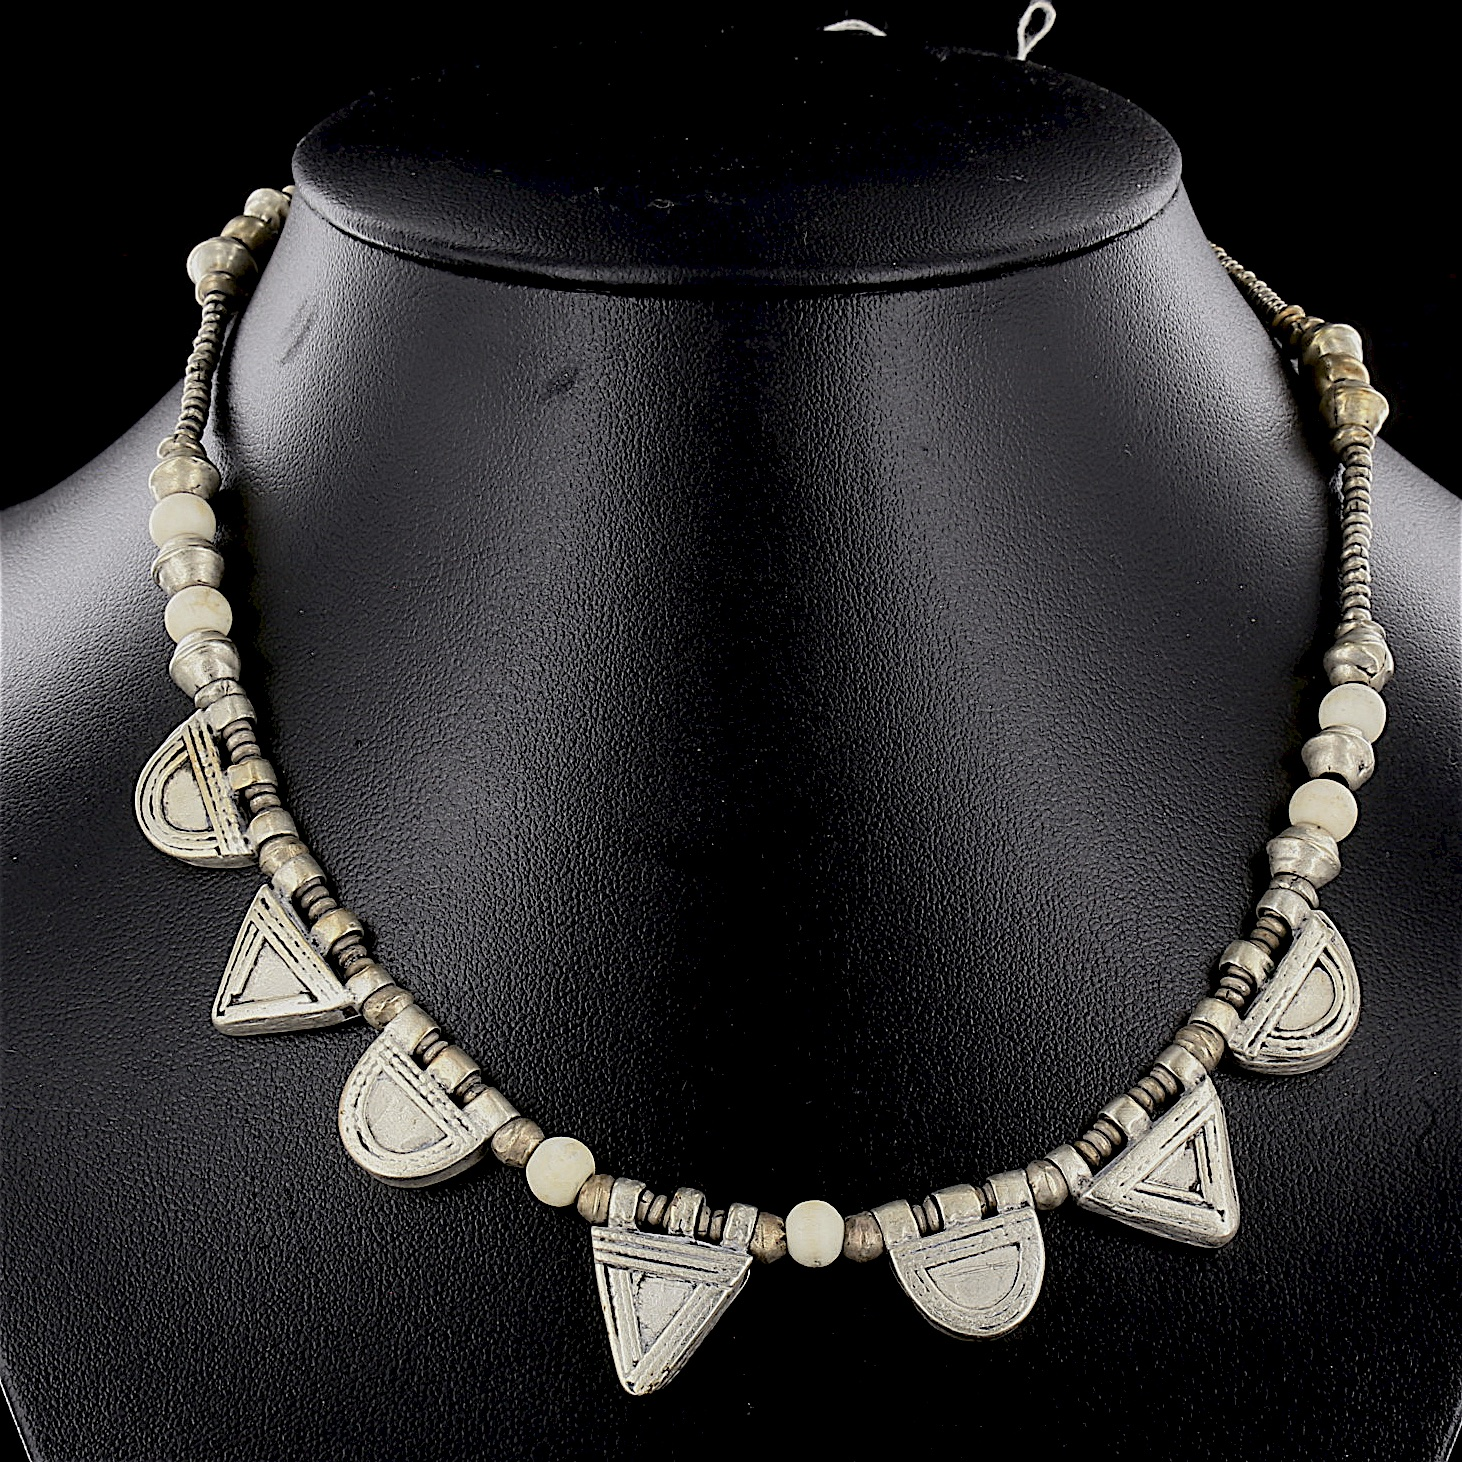 Ethiopian necklace with 7 Telsum charms 02 03 508